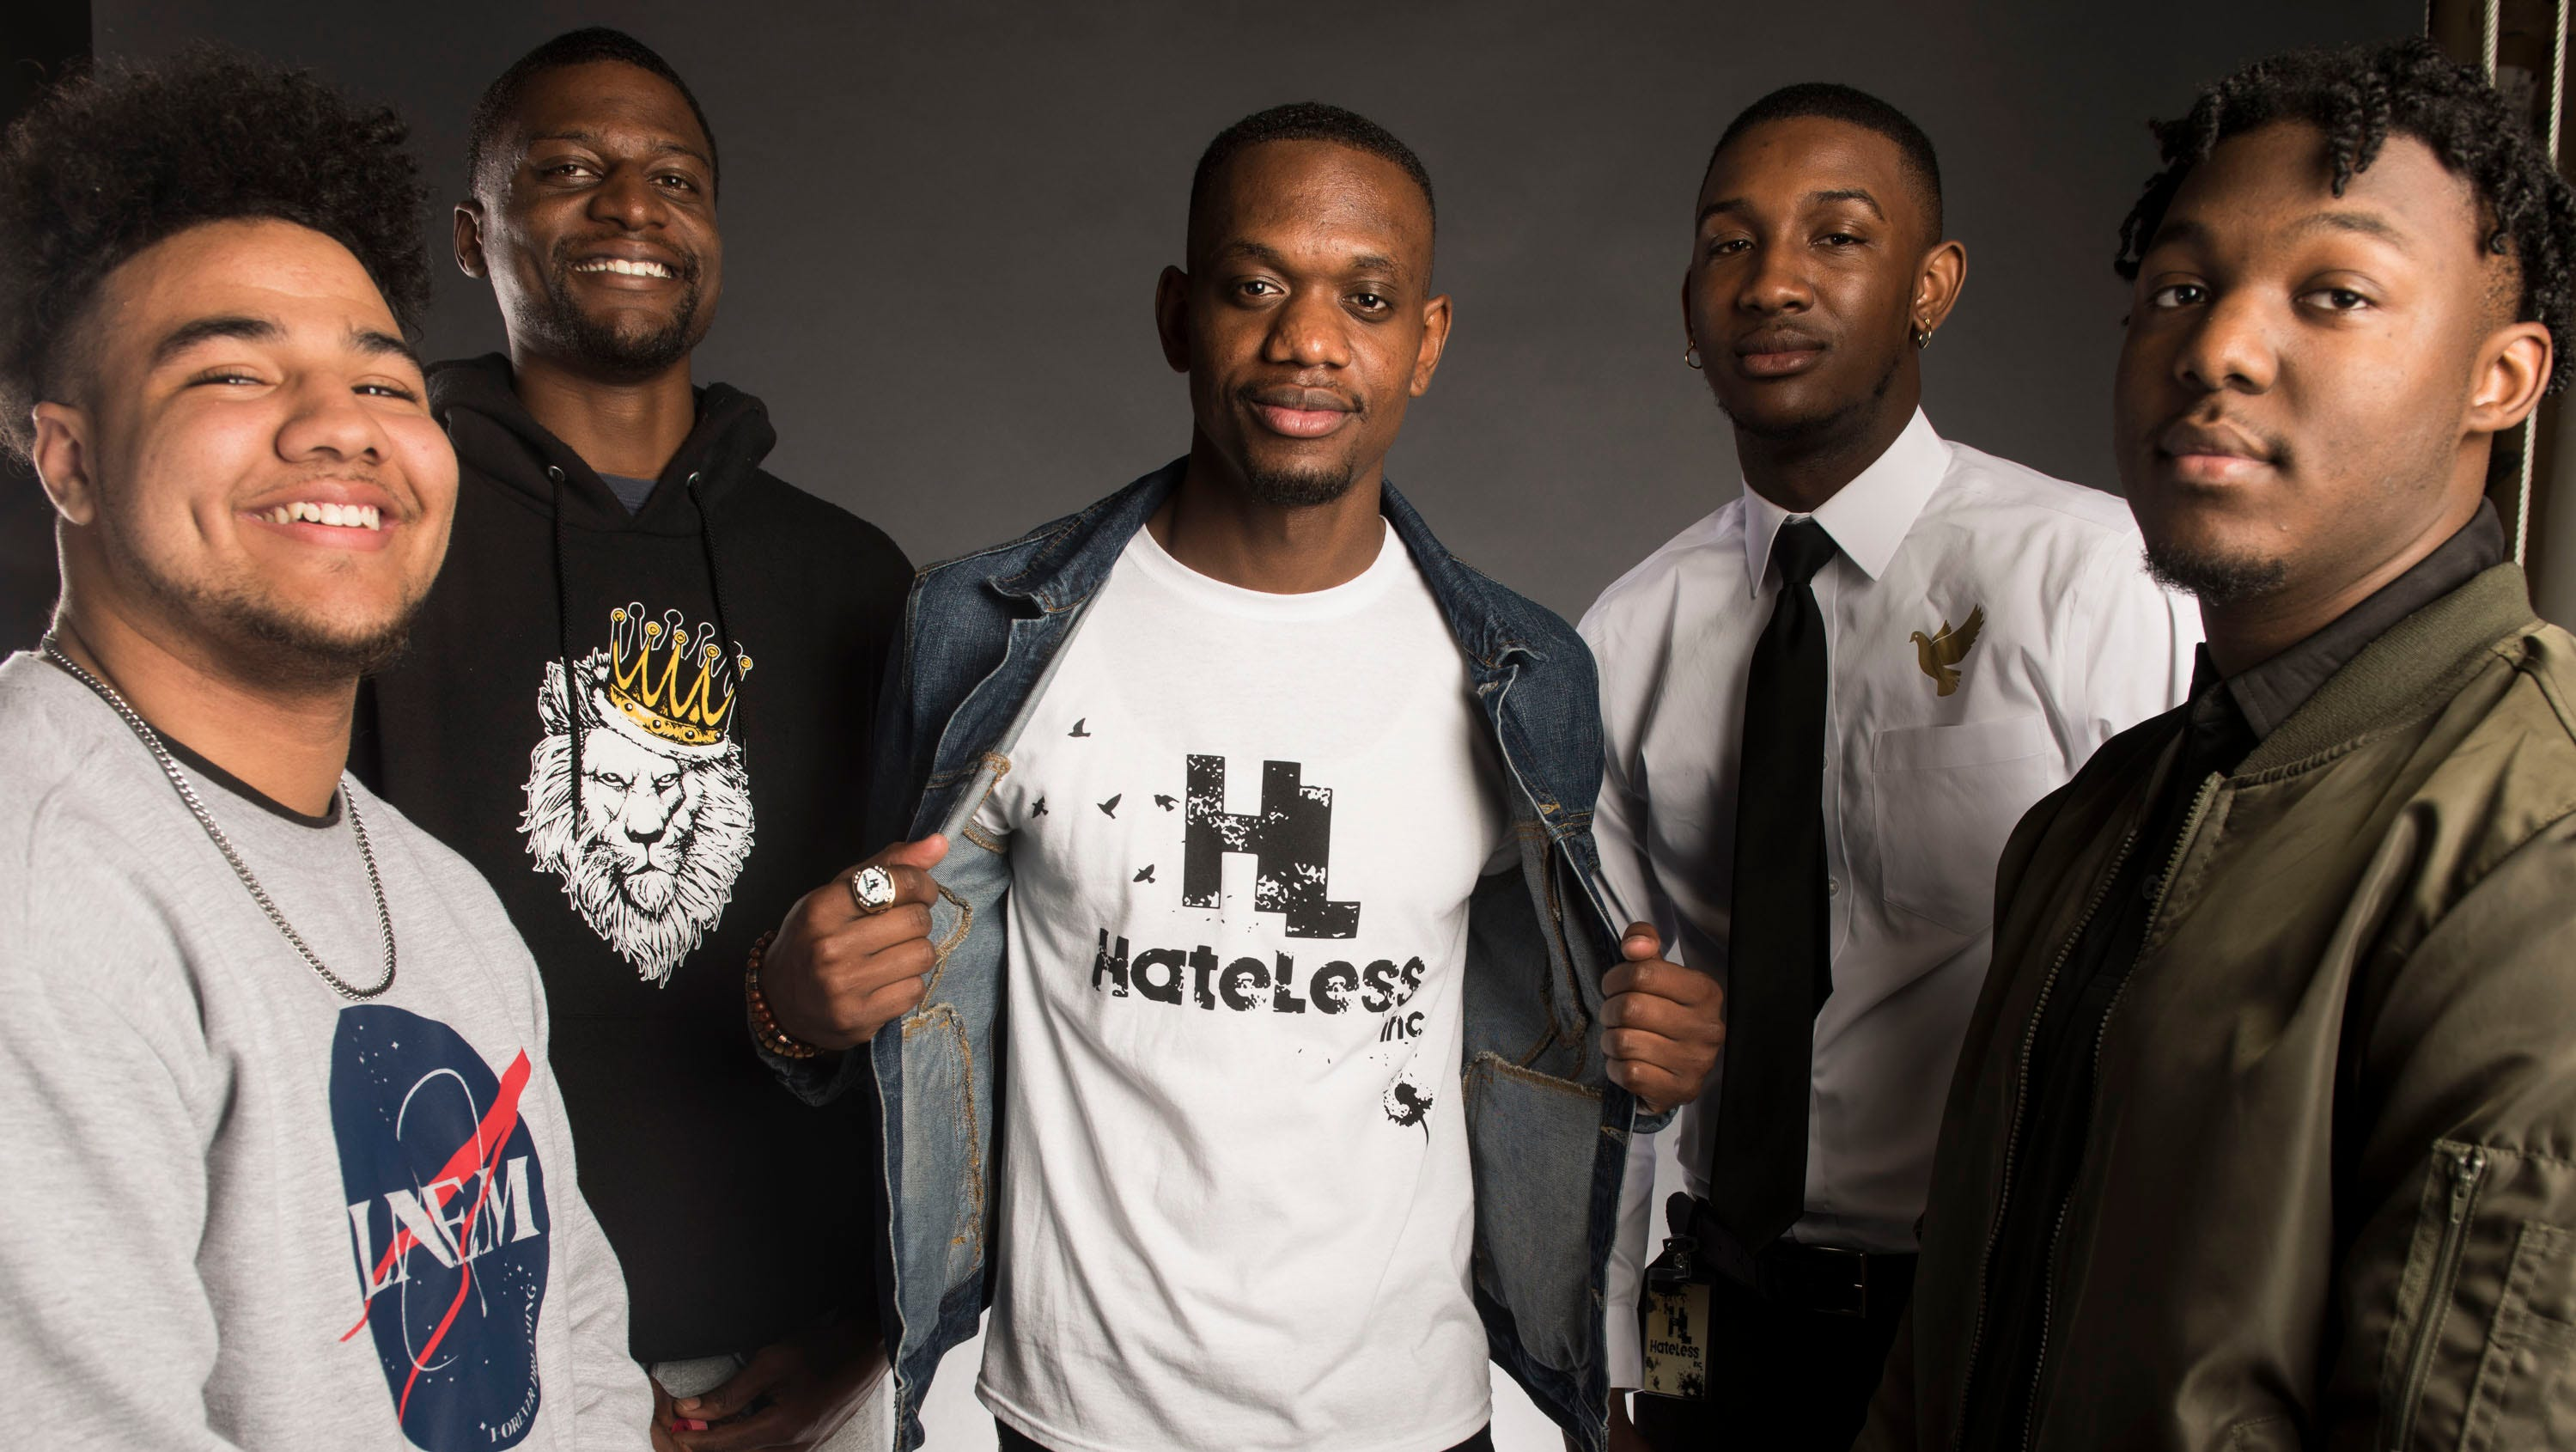 Anthony Gill, from left, James Herndon, founder Jarvis Provitt, Kenneth Bolden and Daniel Jones of the Hateless Foundation poses for a portrait in Montgomery, Ala., on Monday, March 11, 2019.